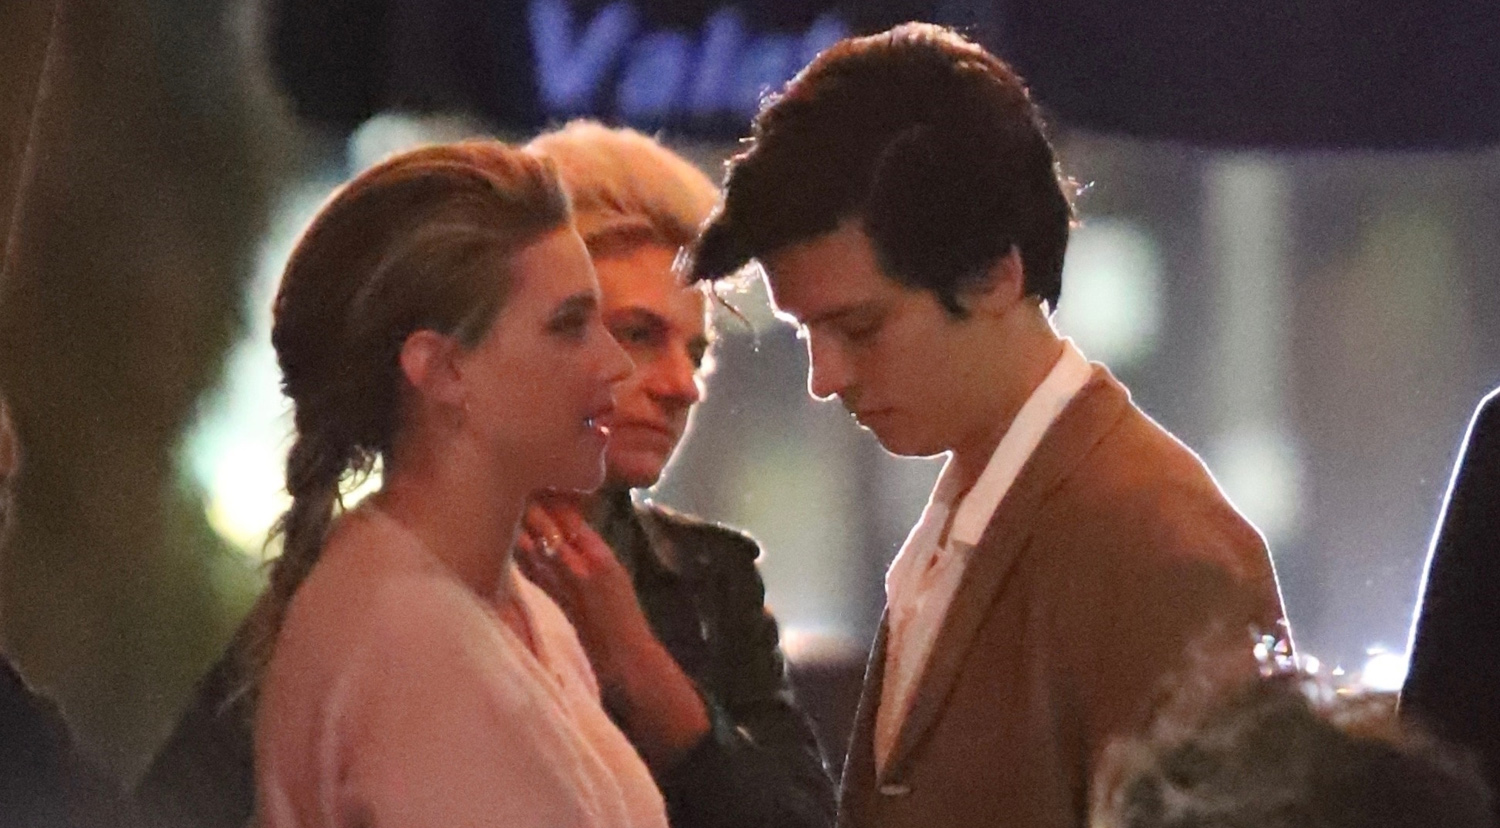 Lili Reinhart & Cole Sprouse Show Sweet PDA at Dinner!